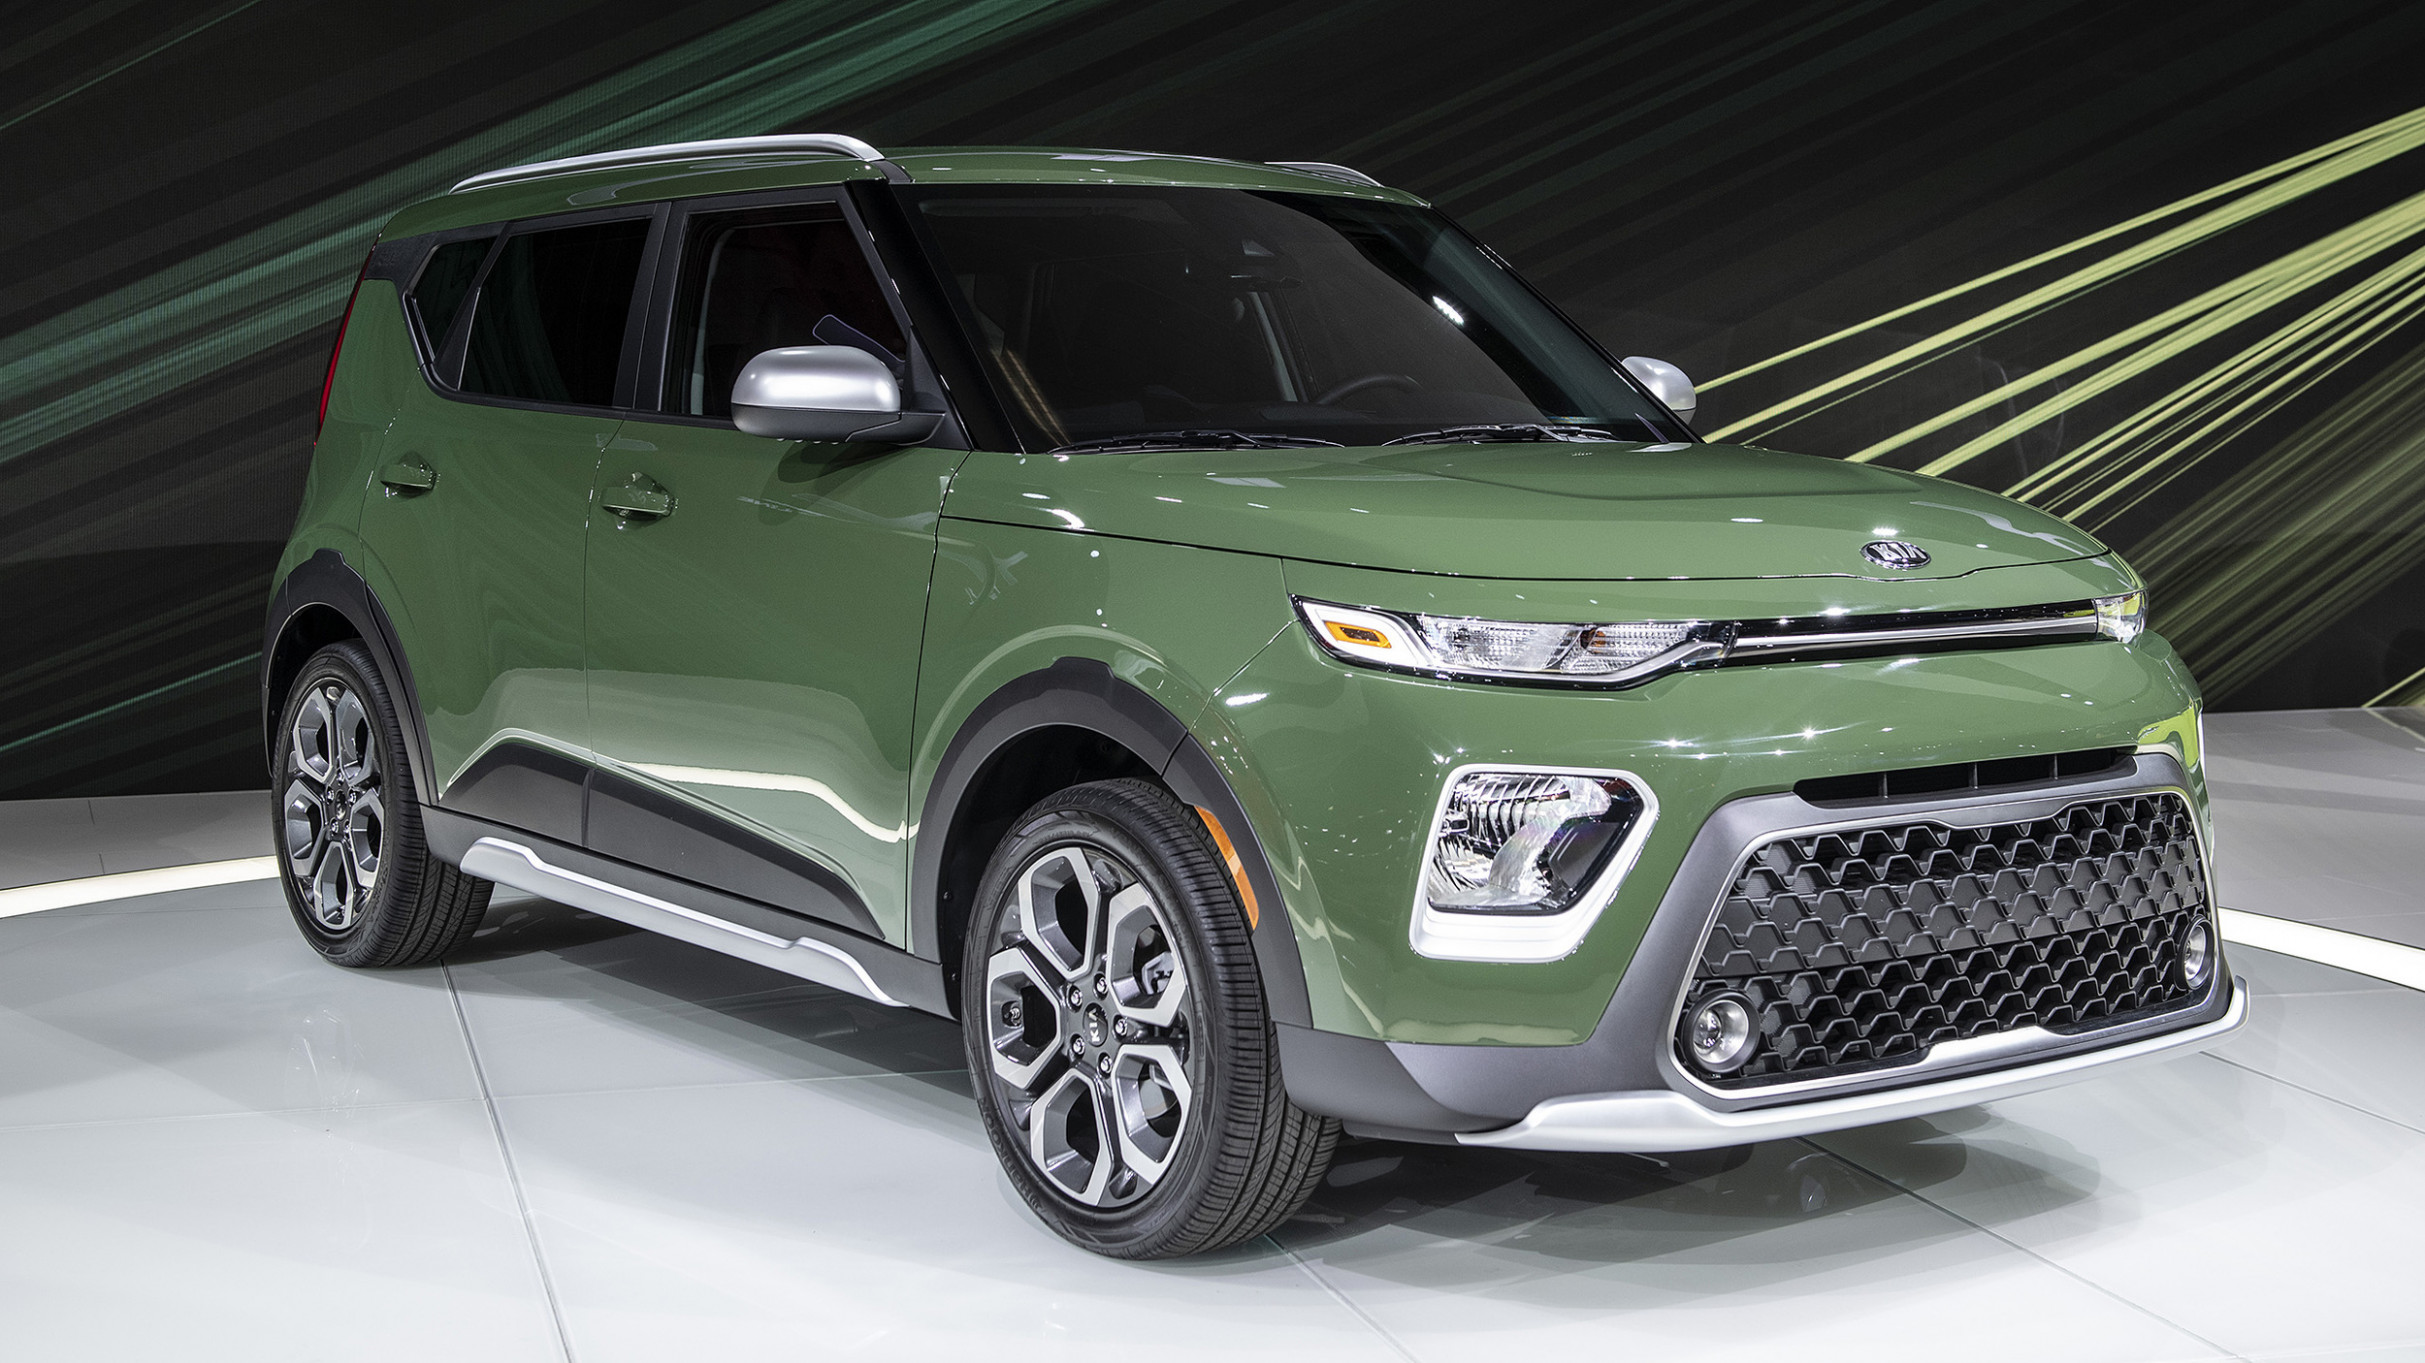 Overview 2022 Kia Soul Undercover Green